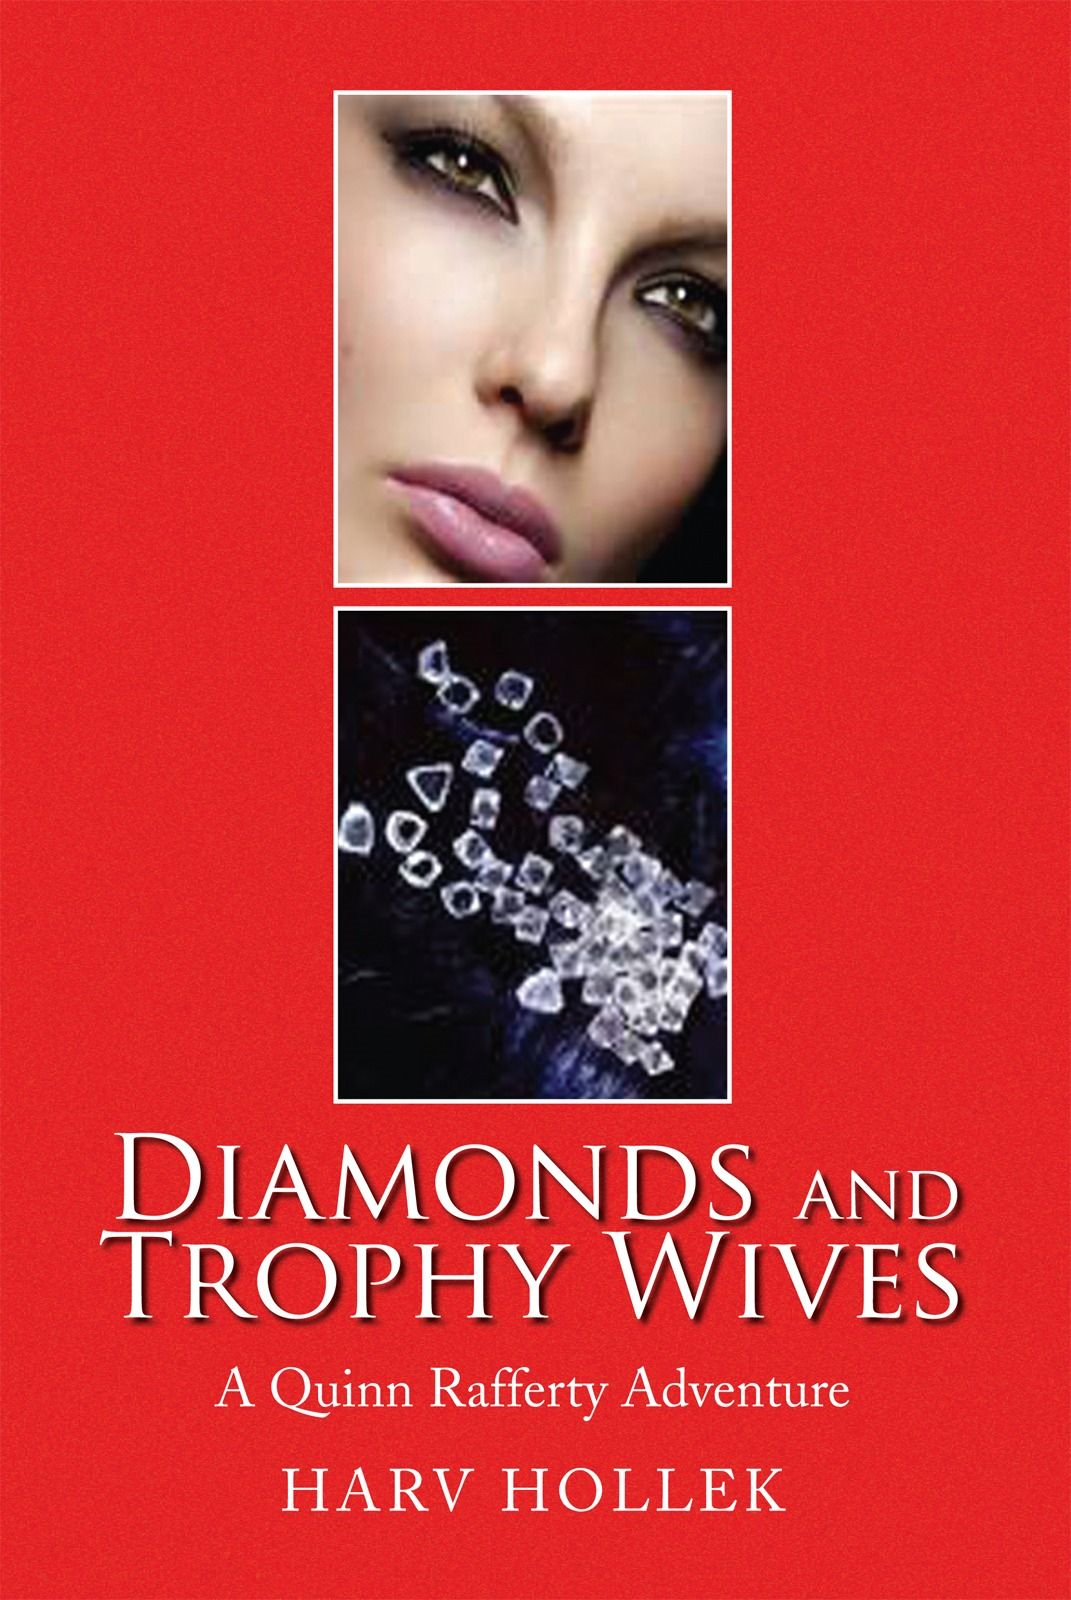 Diamonds and Trophy Wives